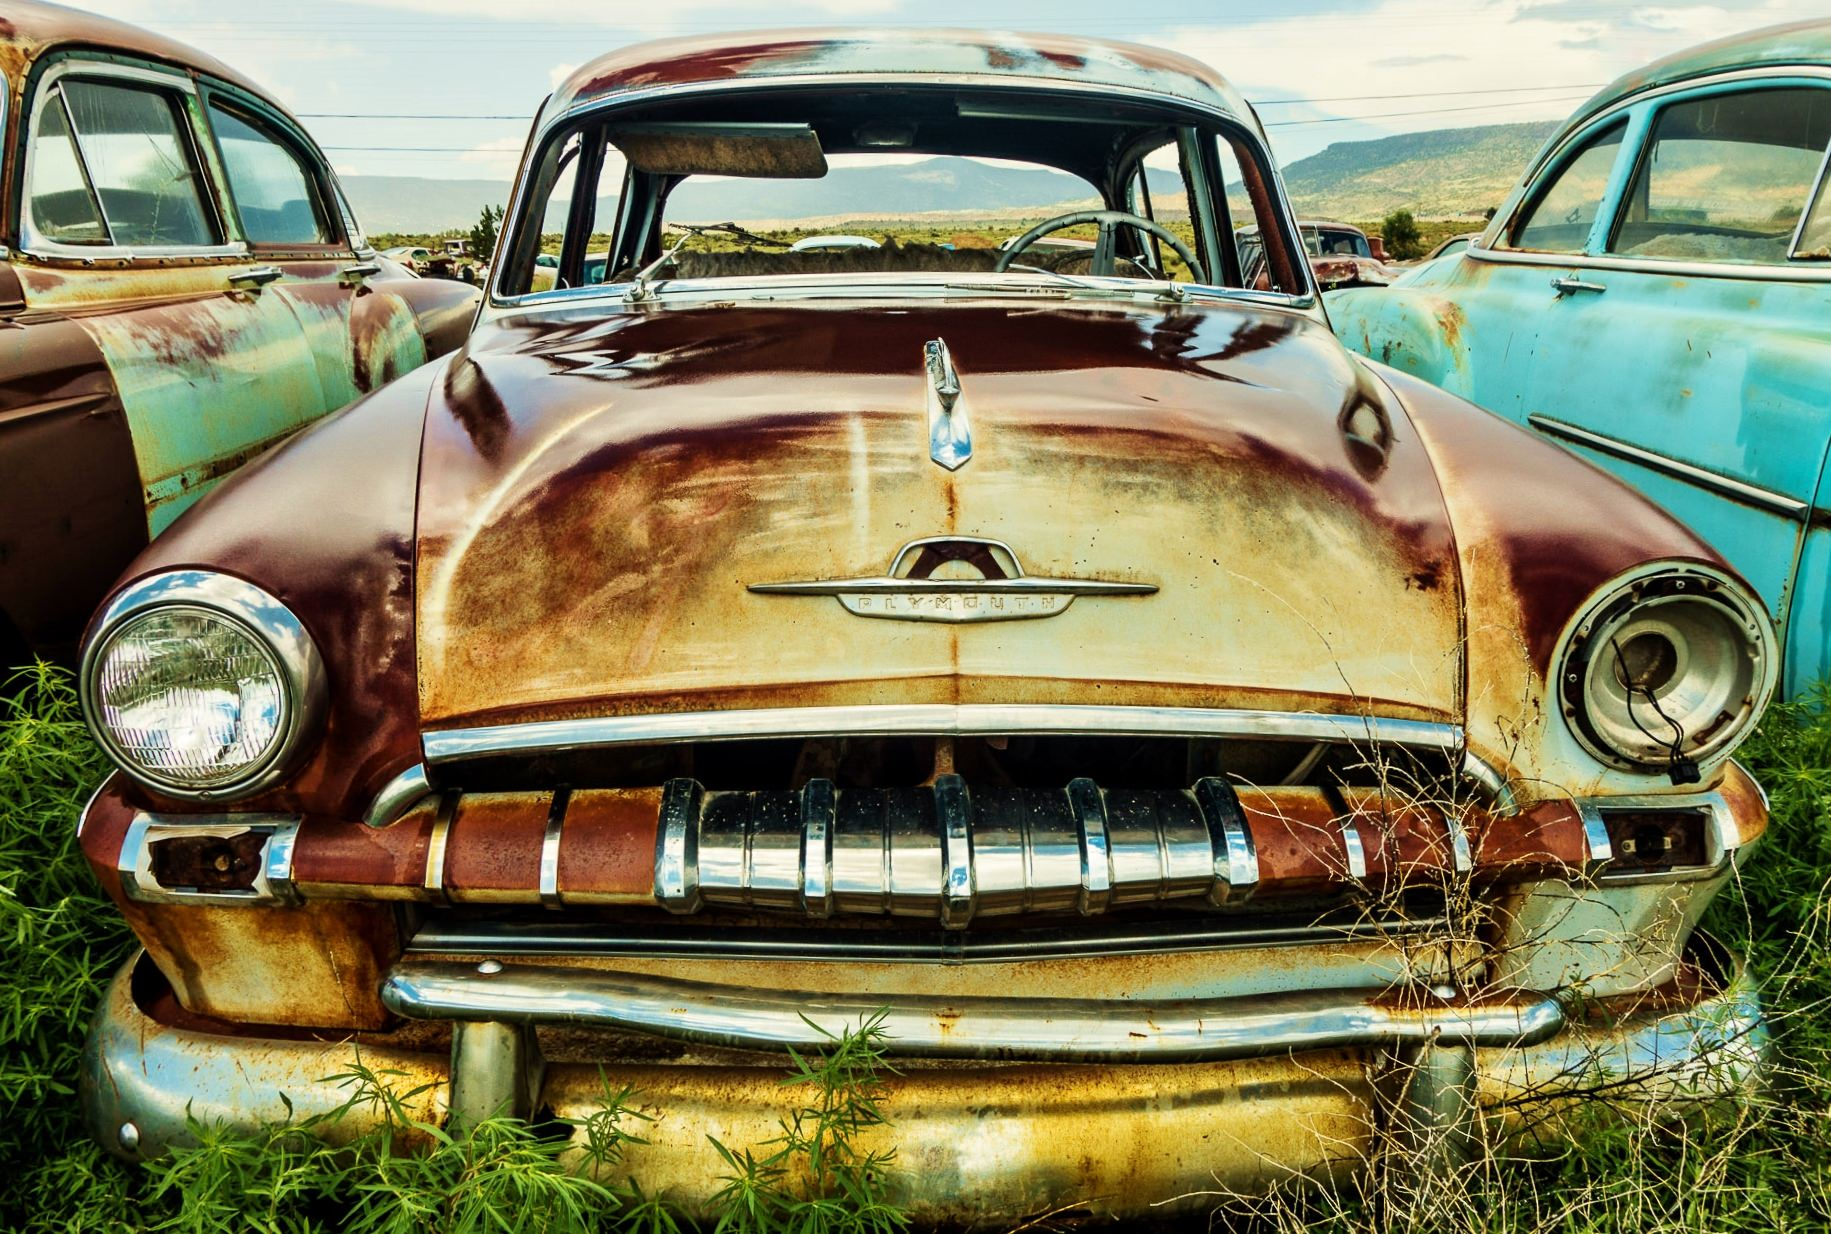 route 66 auto graveyard best photo spots. Black Bedroom Furniture Sets. Home Design Ideas